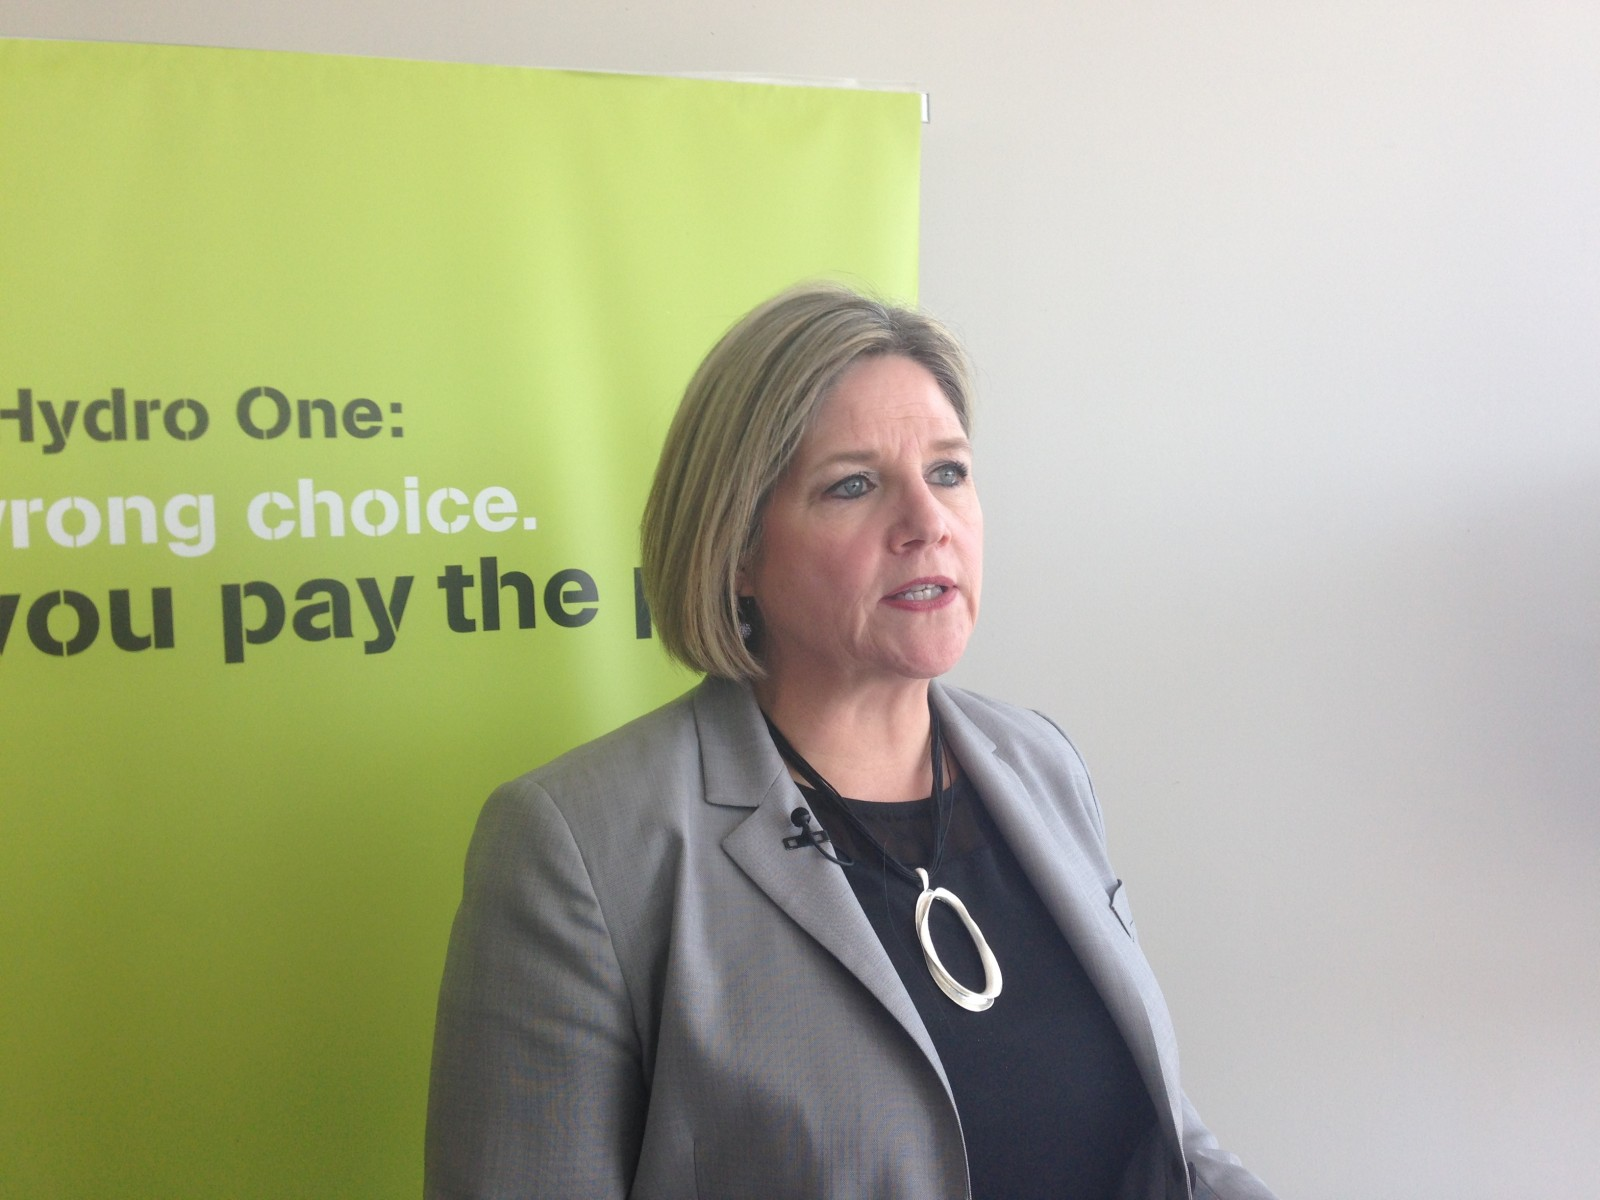 Ontario NDP Leader takes part in town hall meeting on privatizing Hydro One